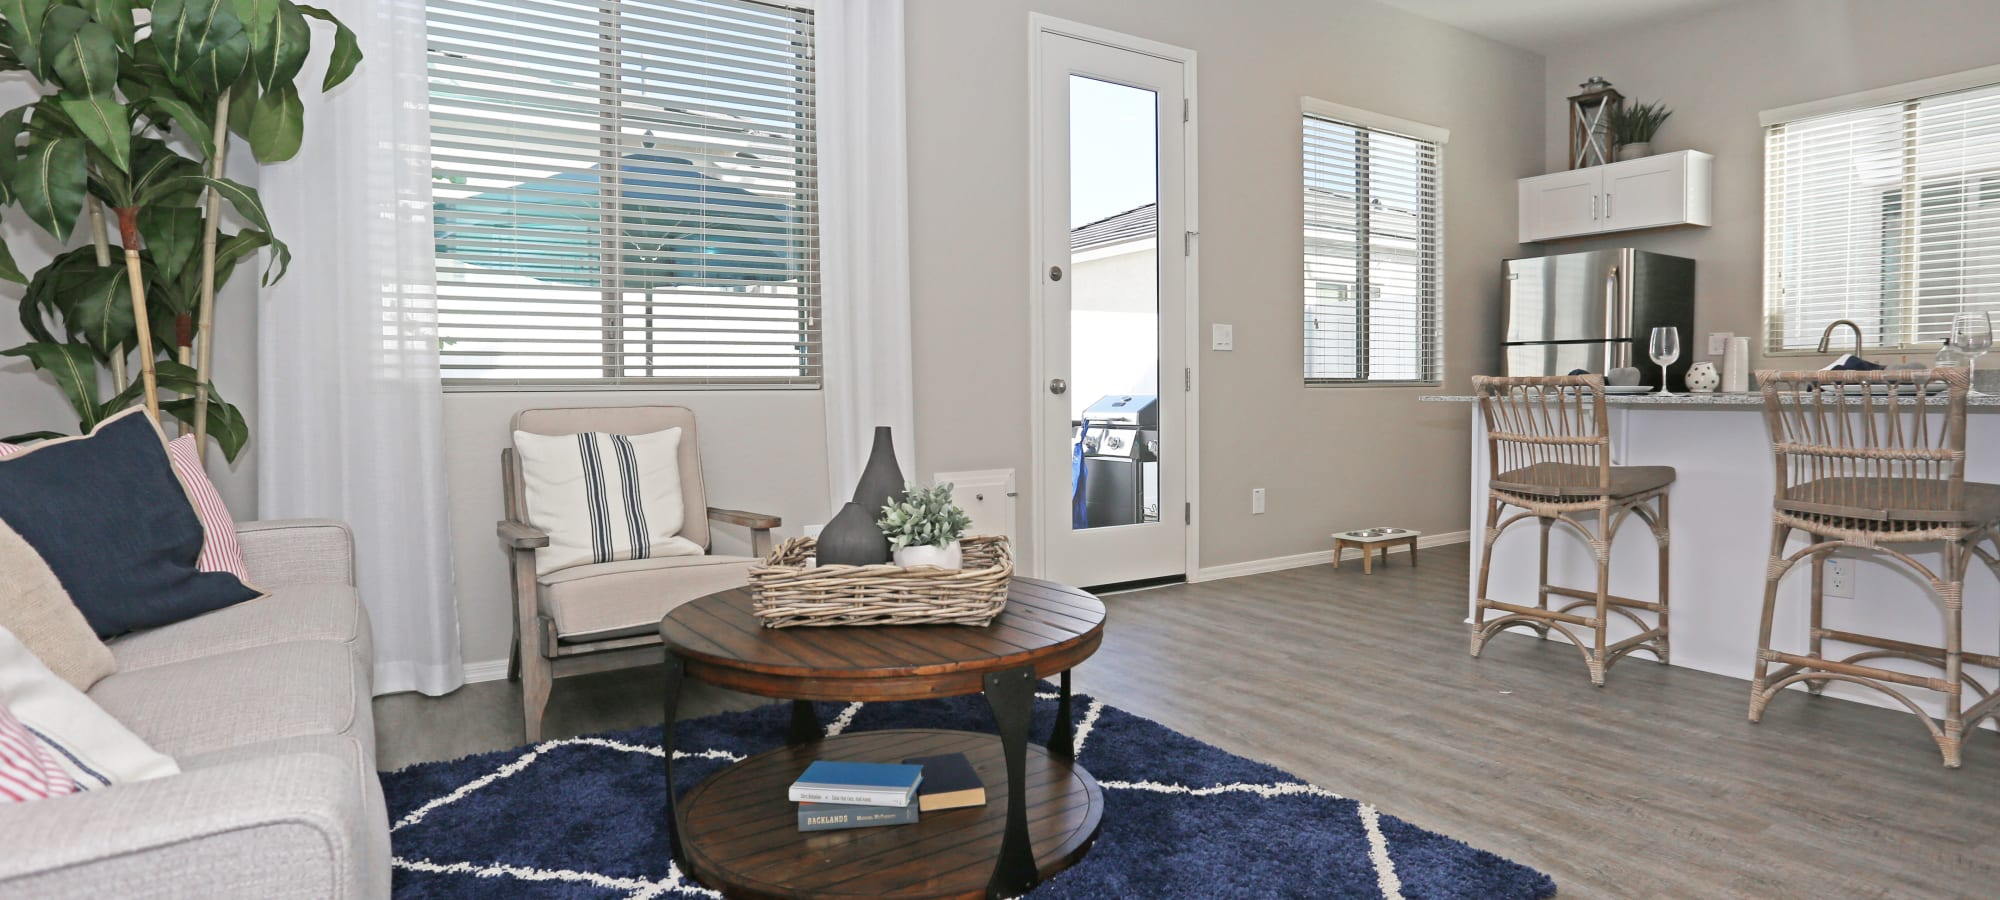 Comfortable living room in a model home at Christopher Todd Communities At Estrella Commons in Goodyear, Arizona